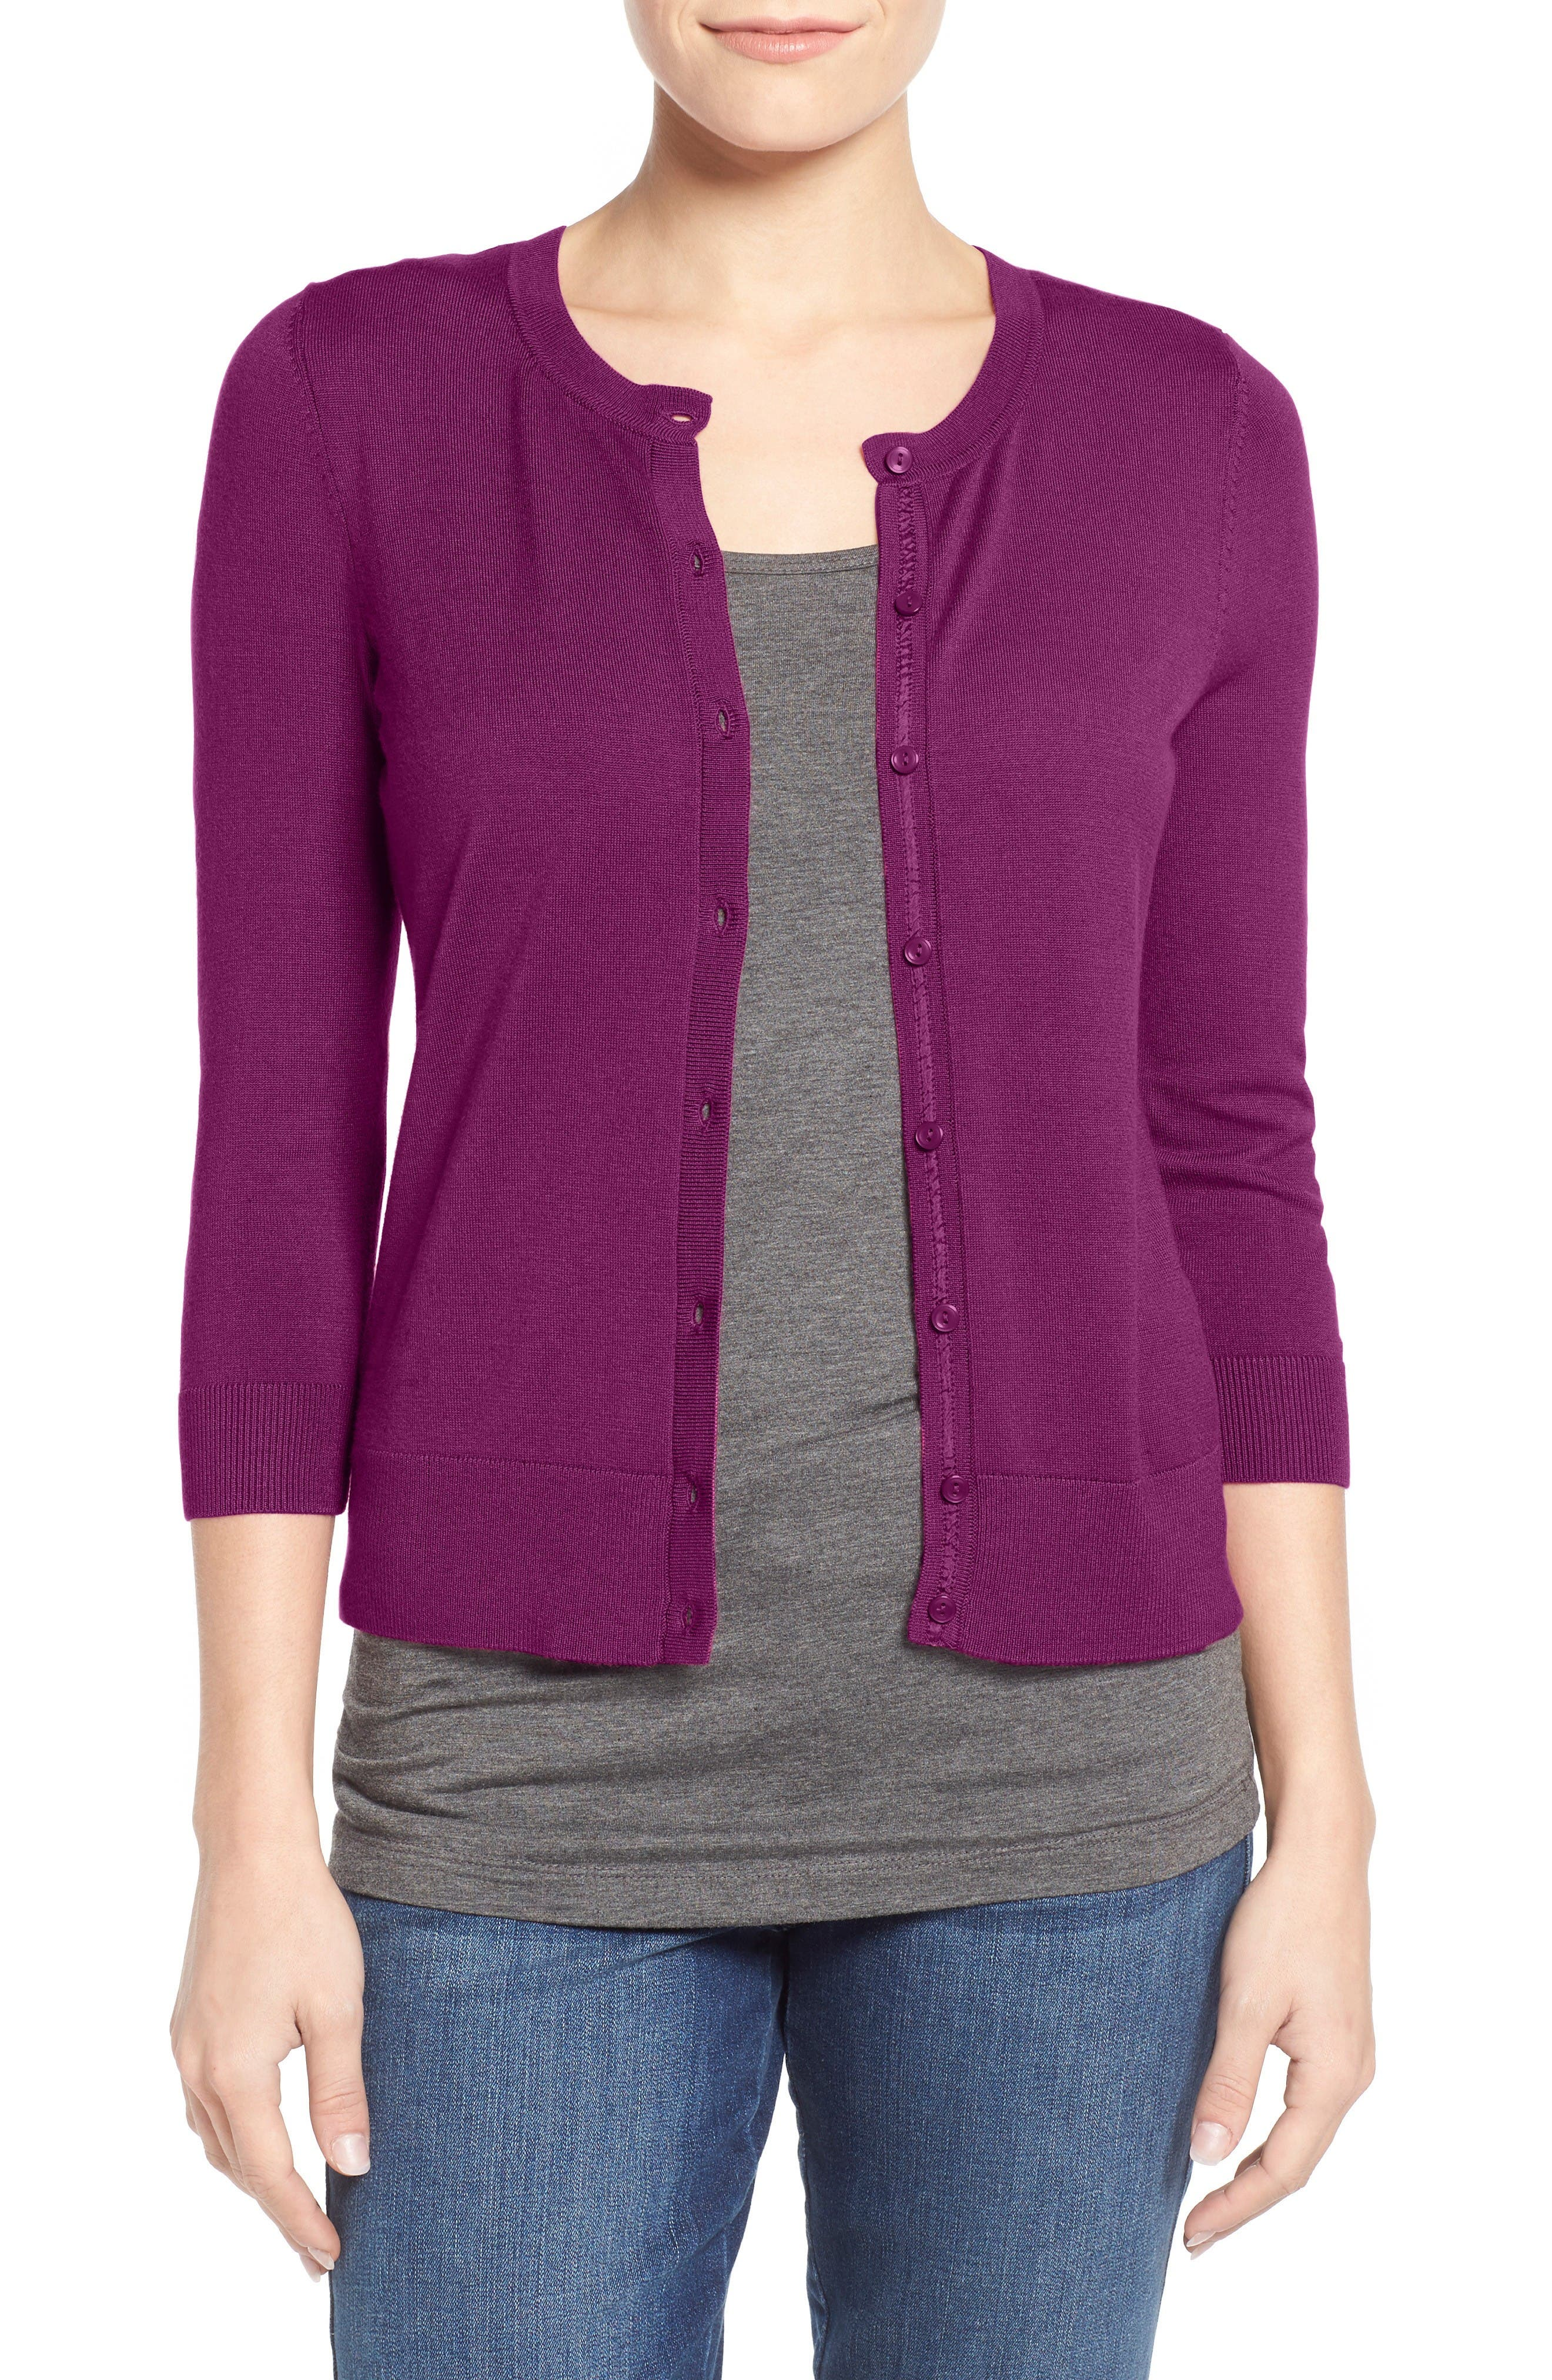 Alternate Image 1 Selected - Halogen® Three Quarter Sleeve Cardigan (Regular & Petite)